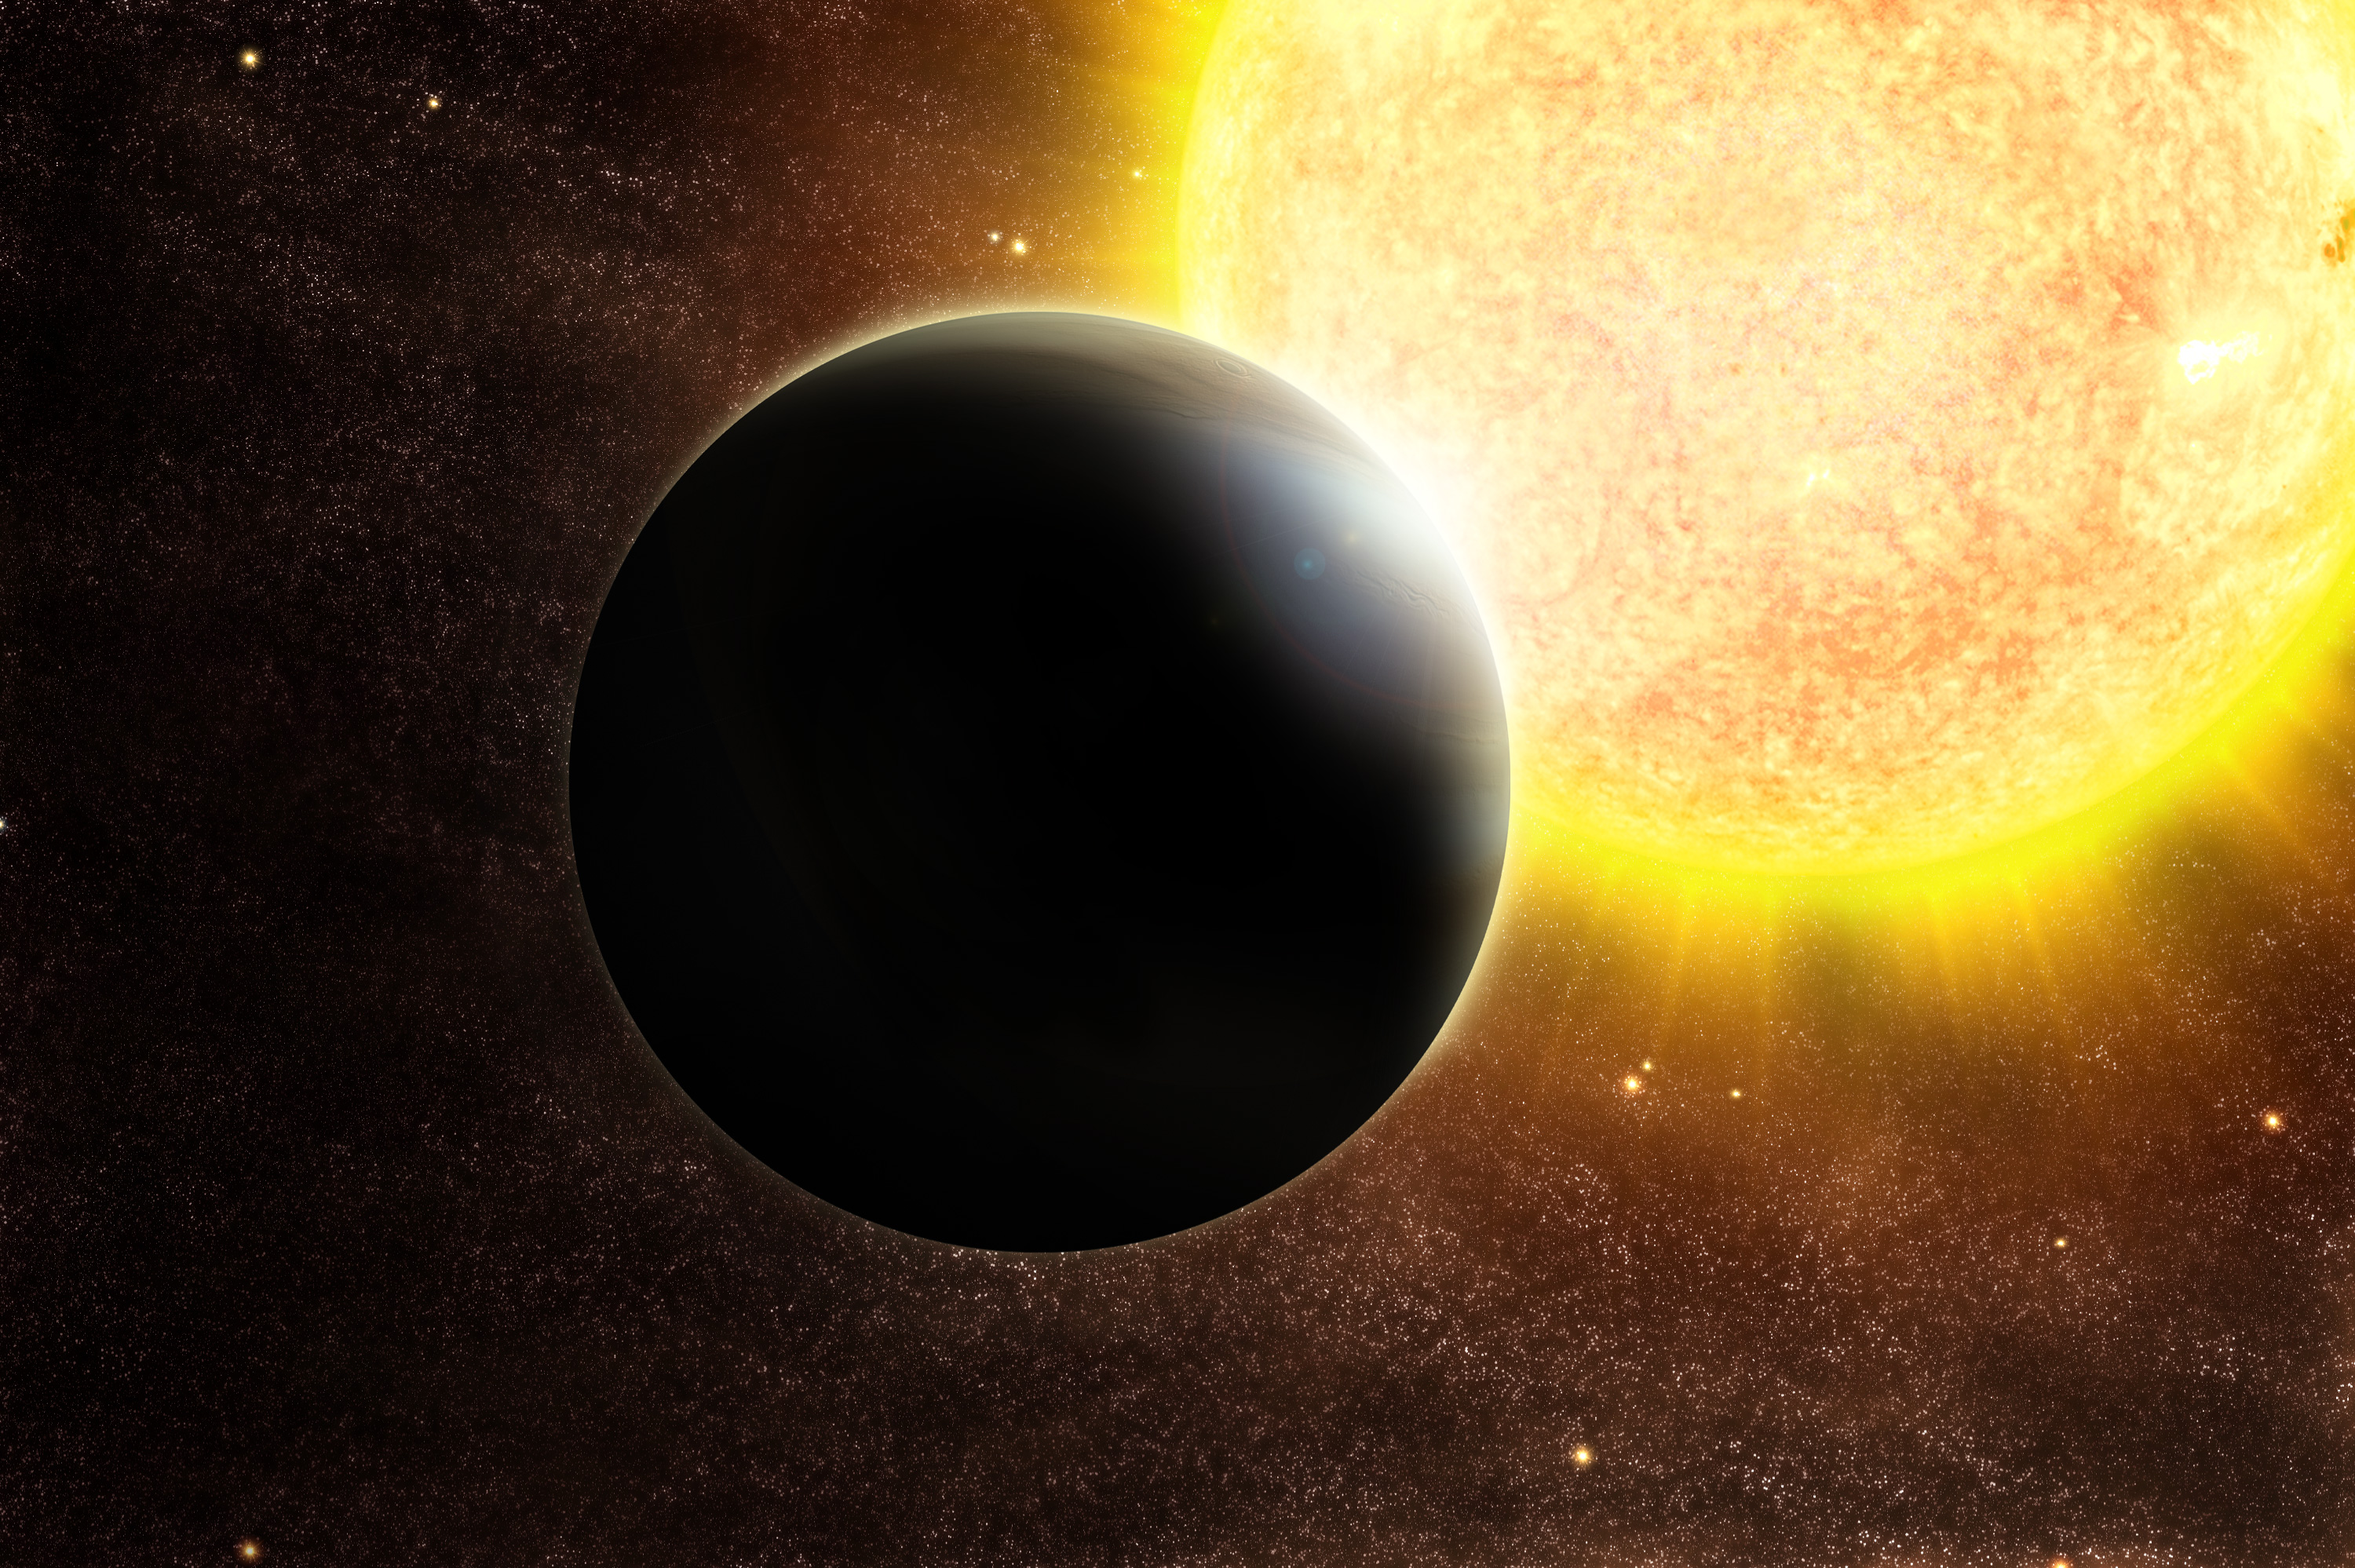 Exoplanets 20/20: Looking Back to the Future | NASA